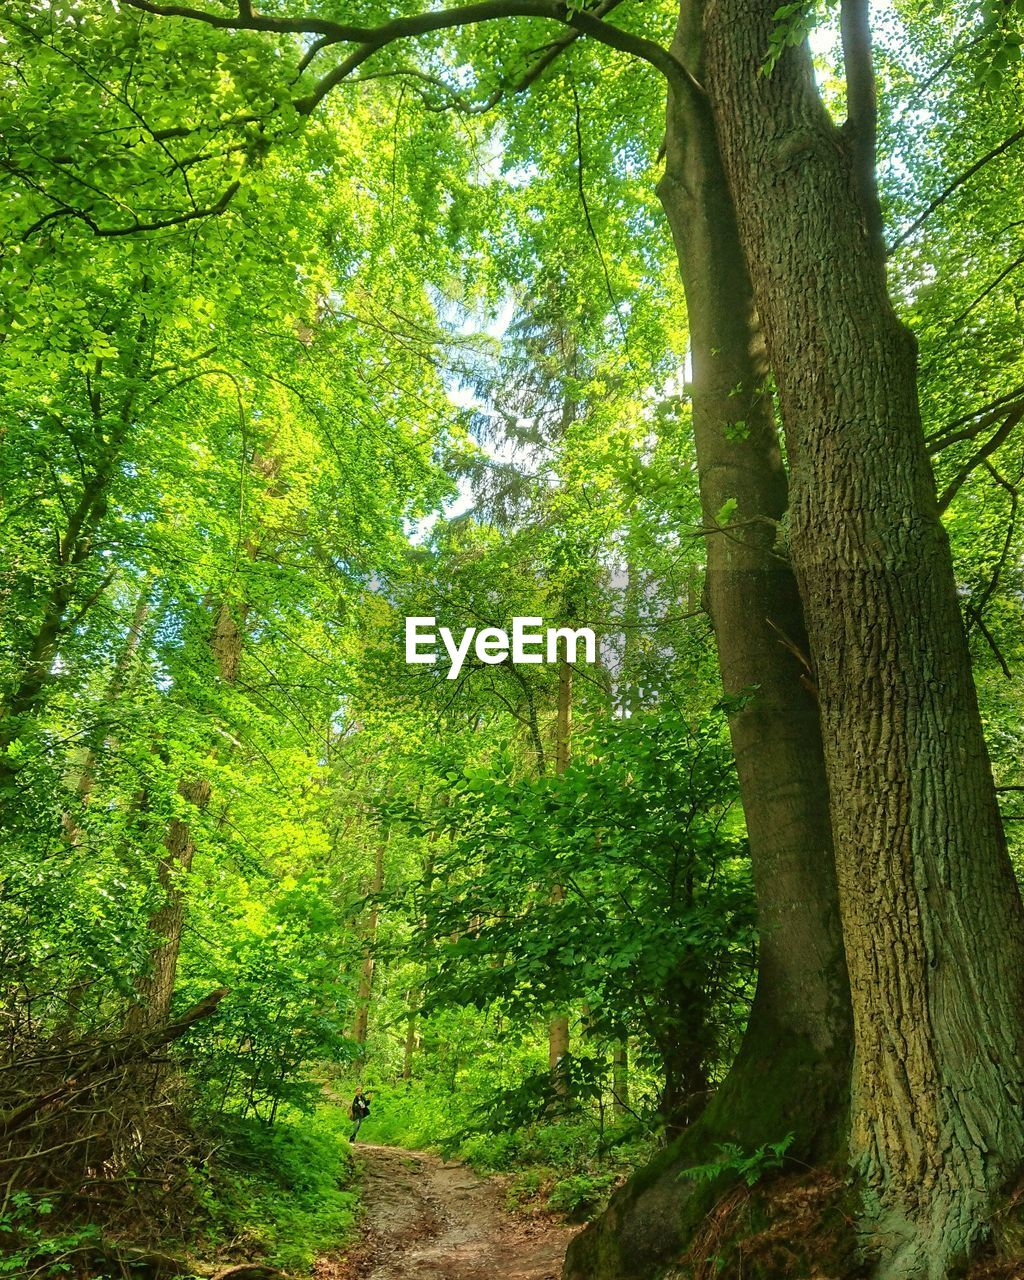 tree, plant, tree trunk, trunk, land, forest, growth, beauty in nature, nature, green color, tranquility, woodland, day, tranquil scene, environment, scenics - nature, outdoors, non-urban scene, foliage, no people